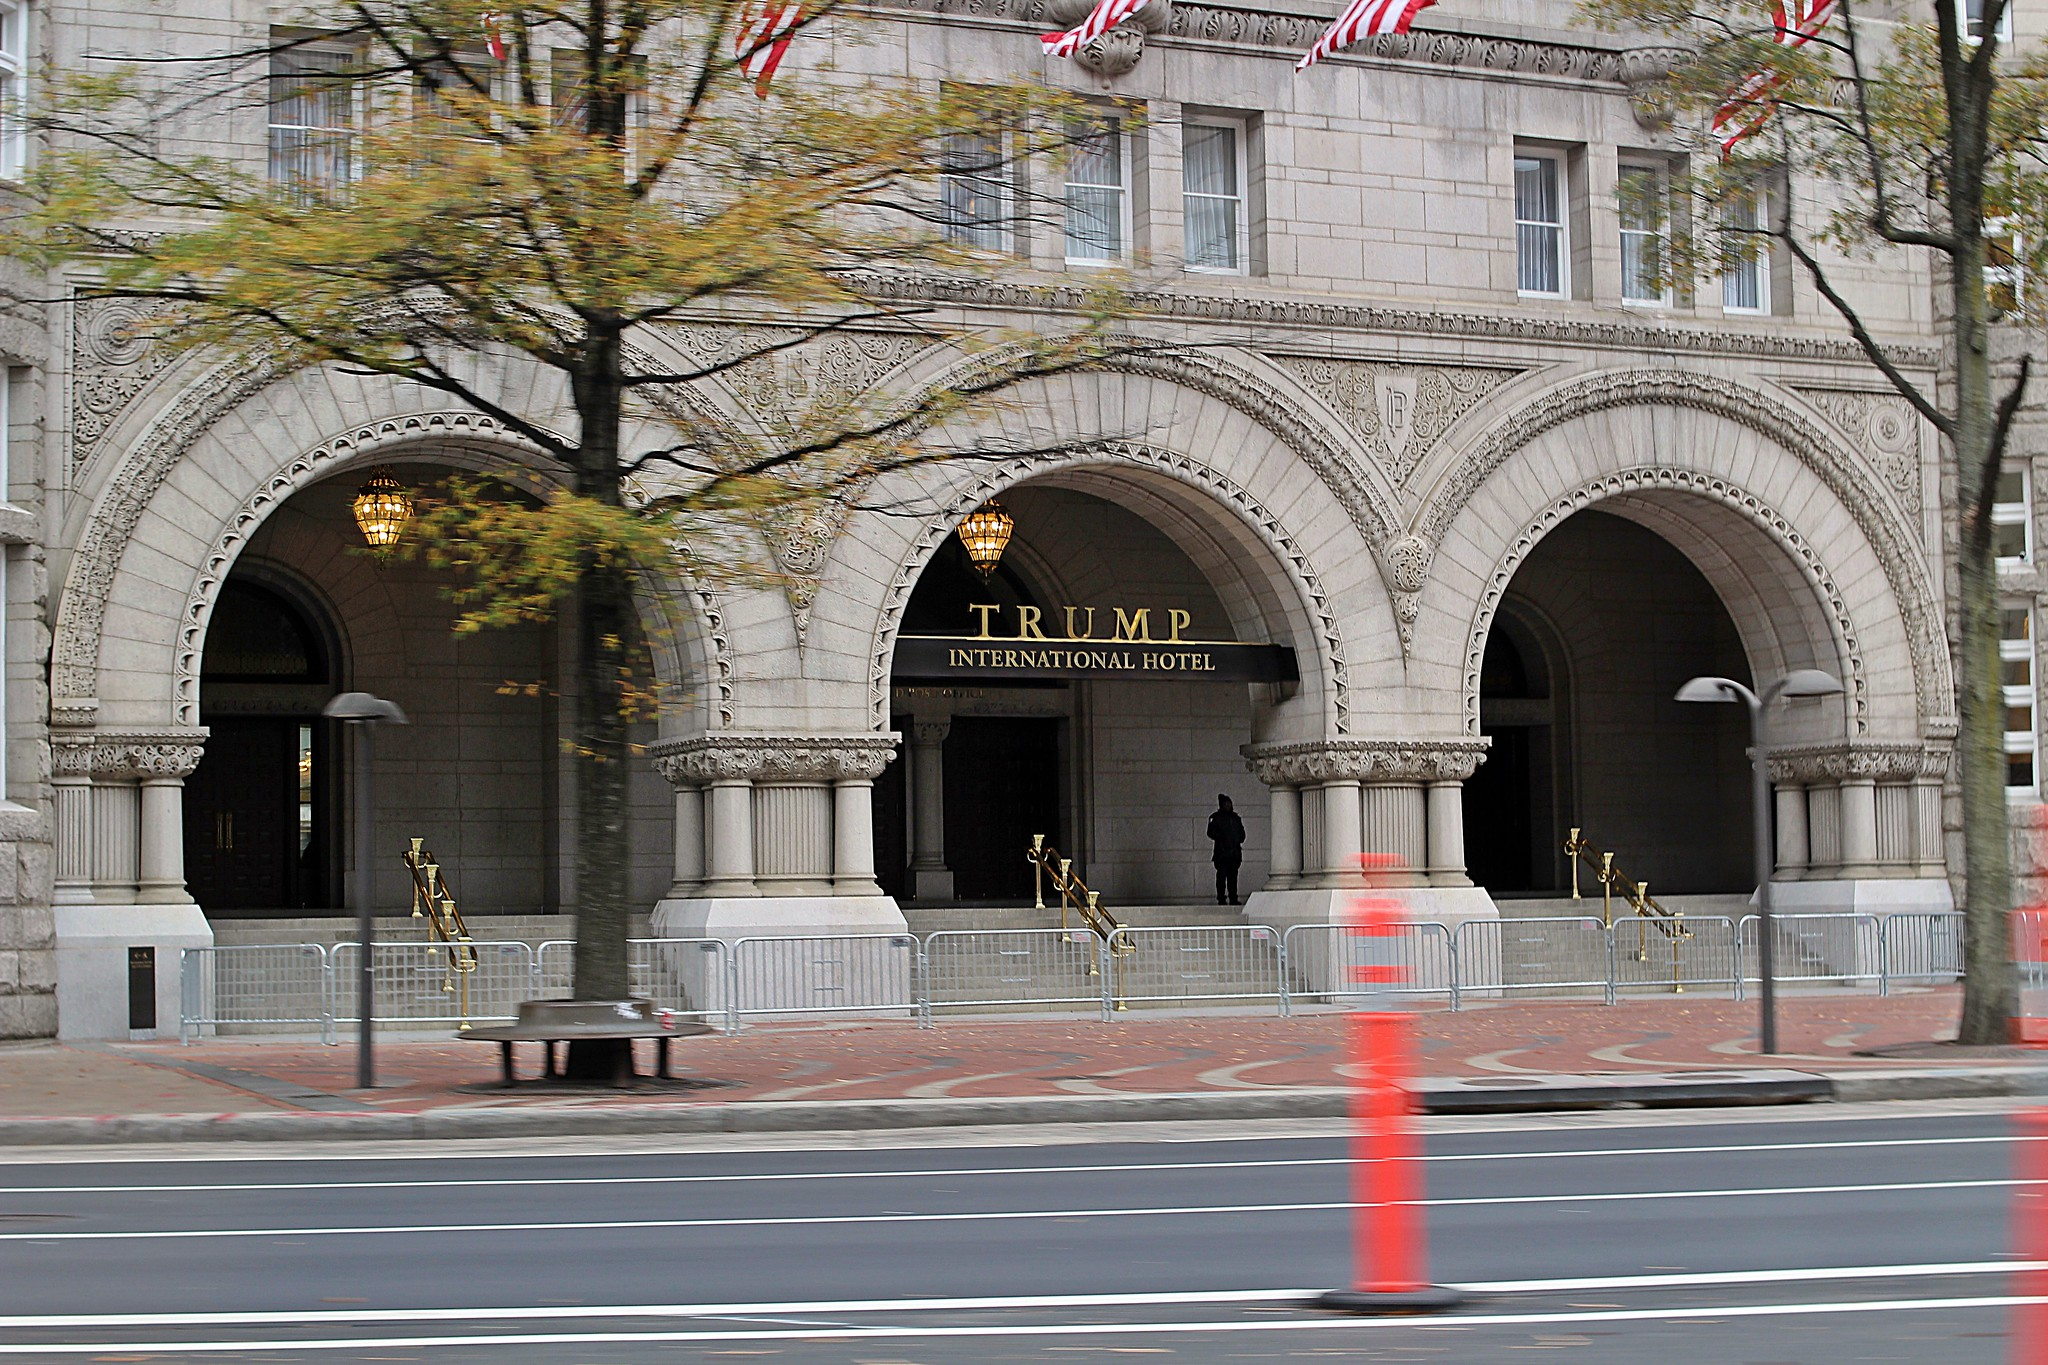 Photo of Trump International Hotel in Washington, D.C. Photo by Ian Morton.